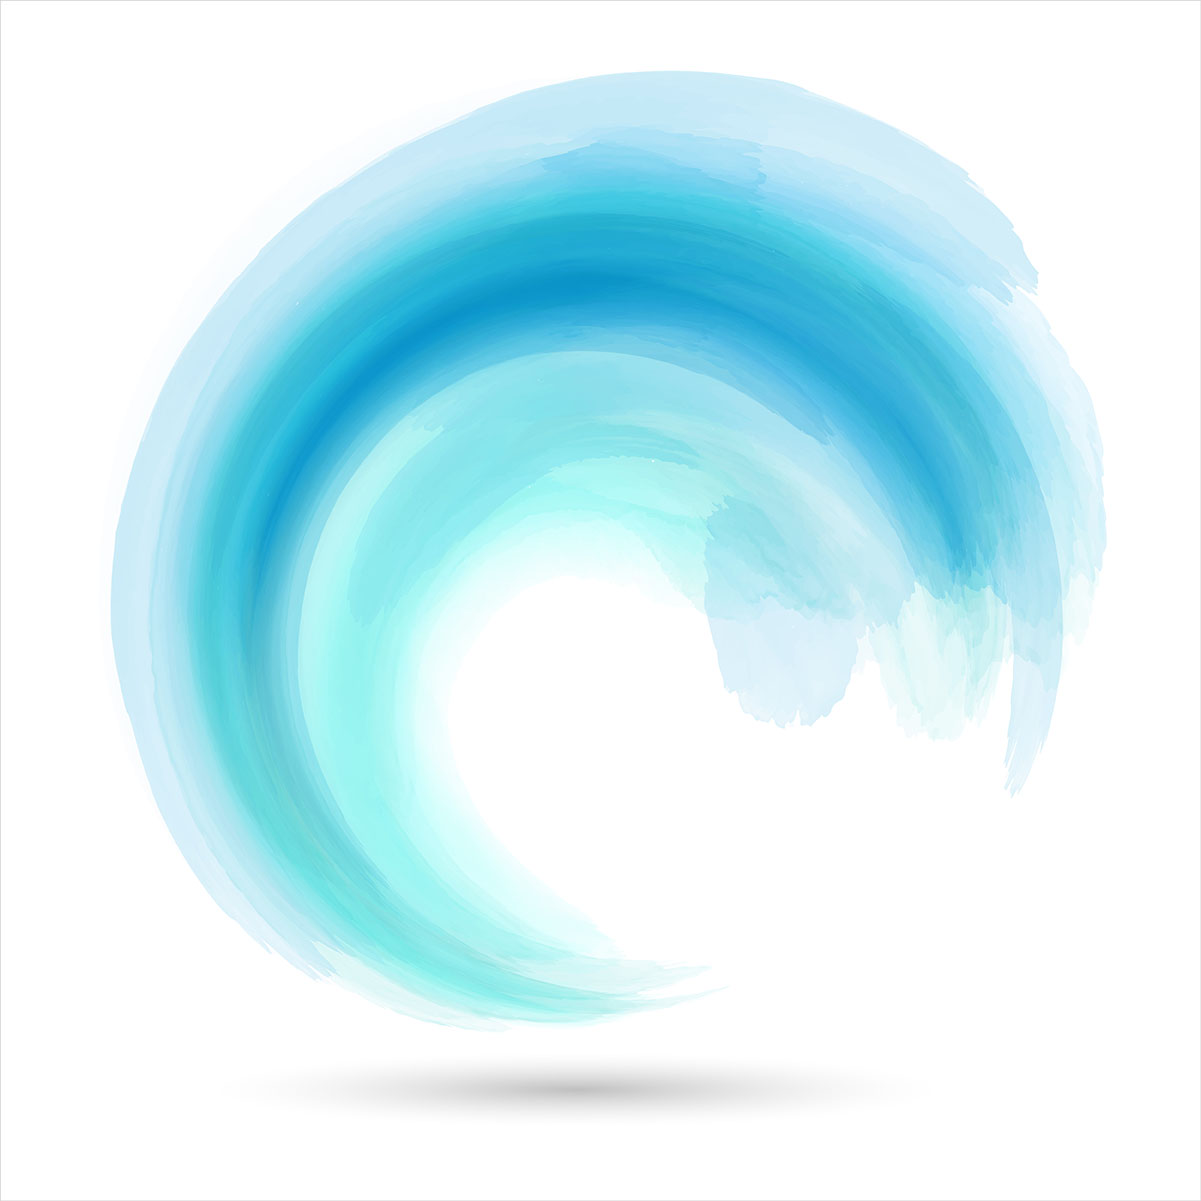 Abstract Wave Design Download Free Vectors Clipart